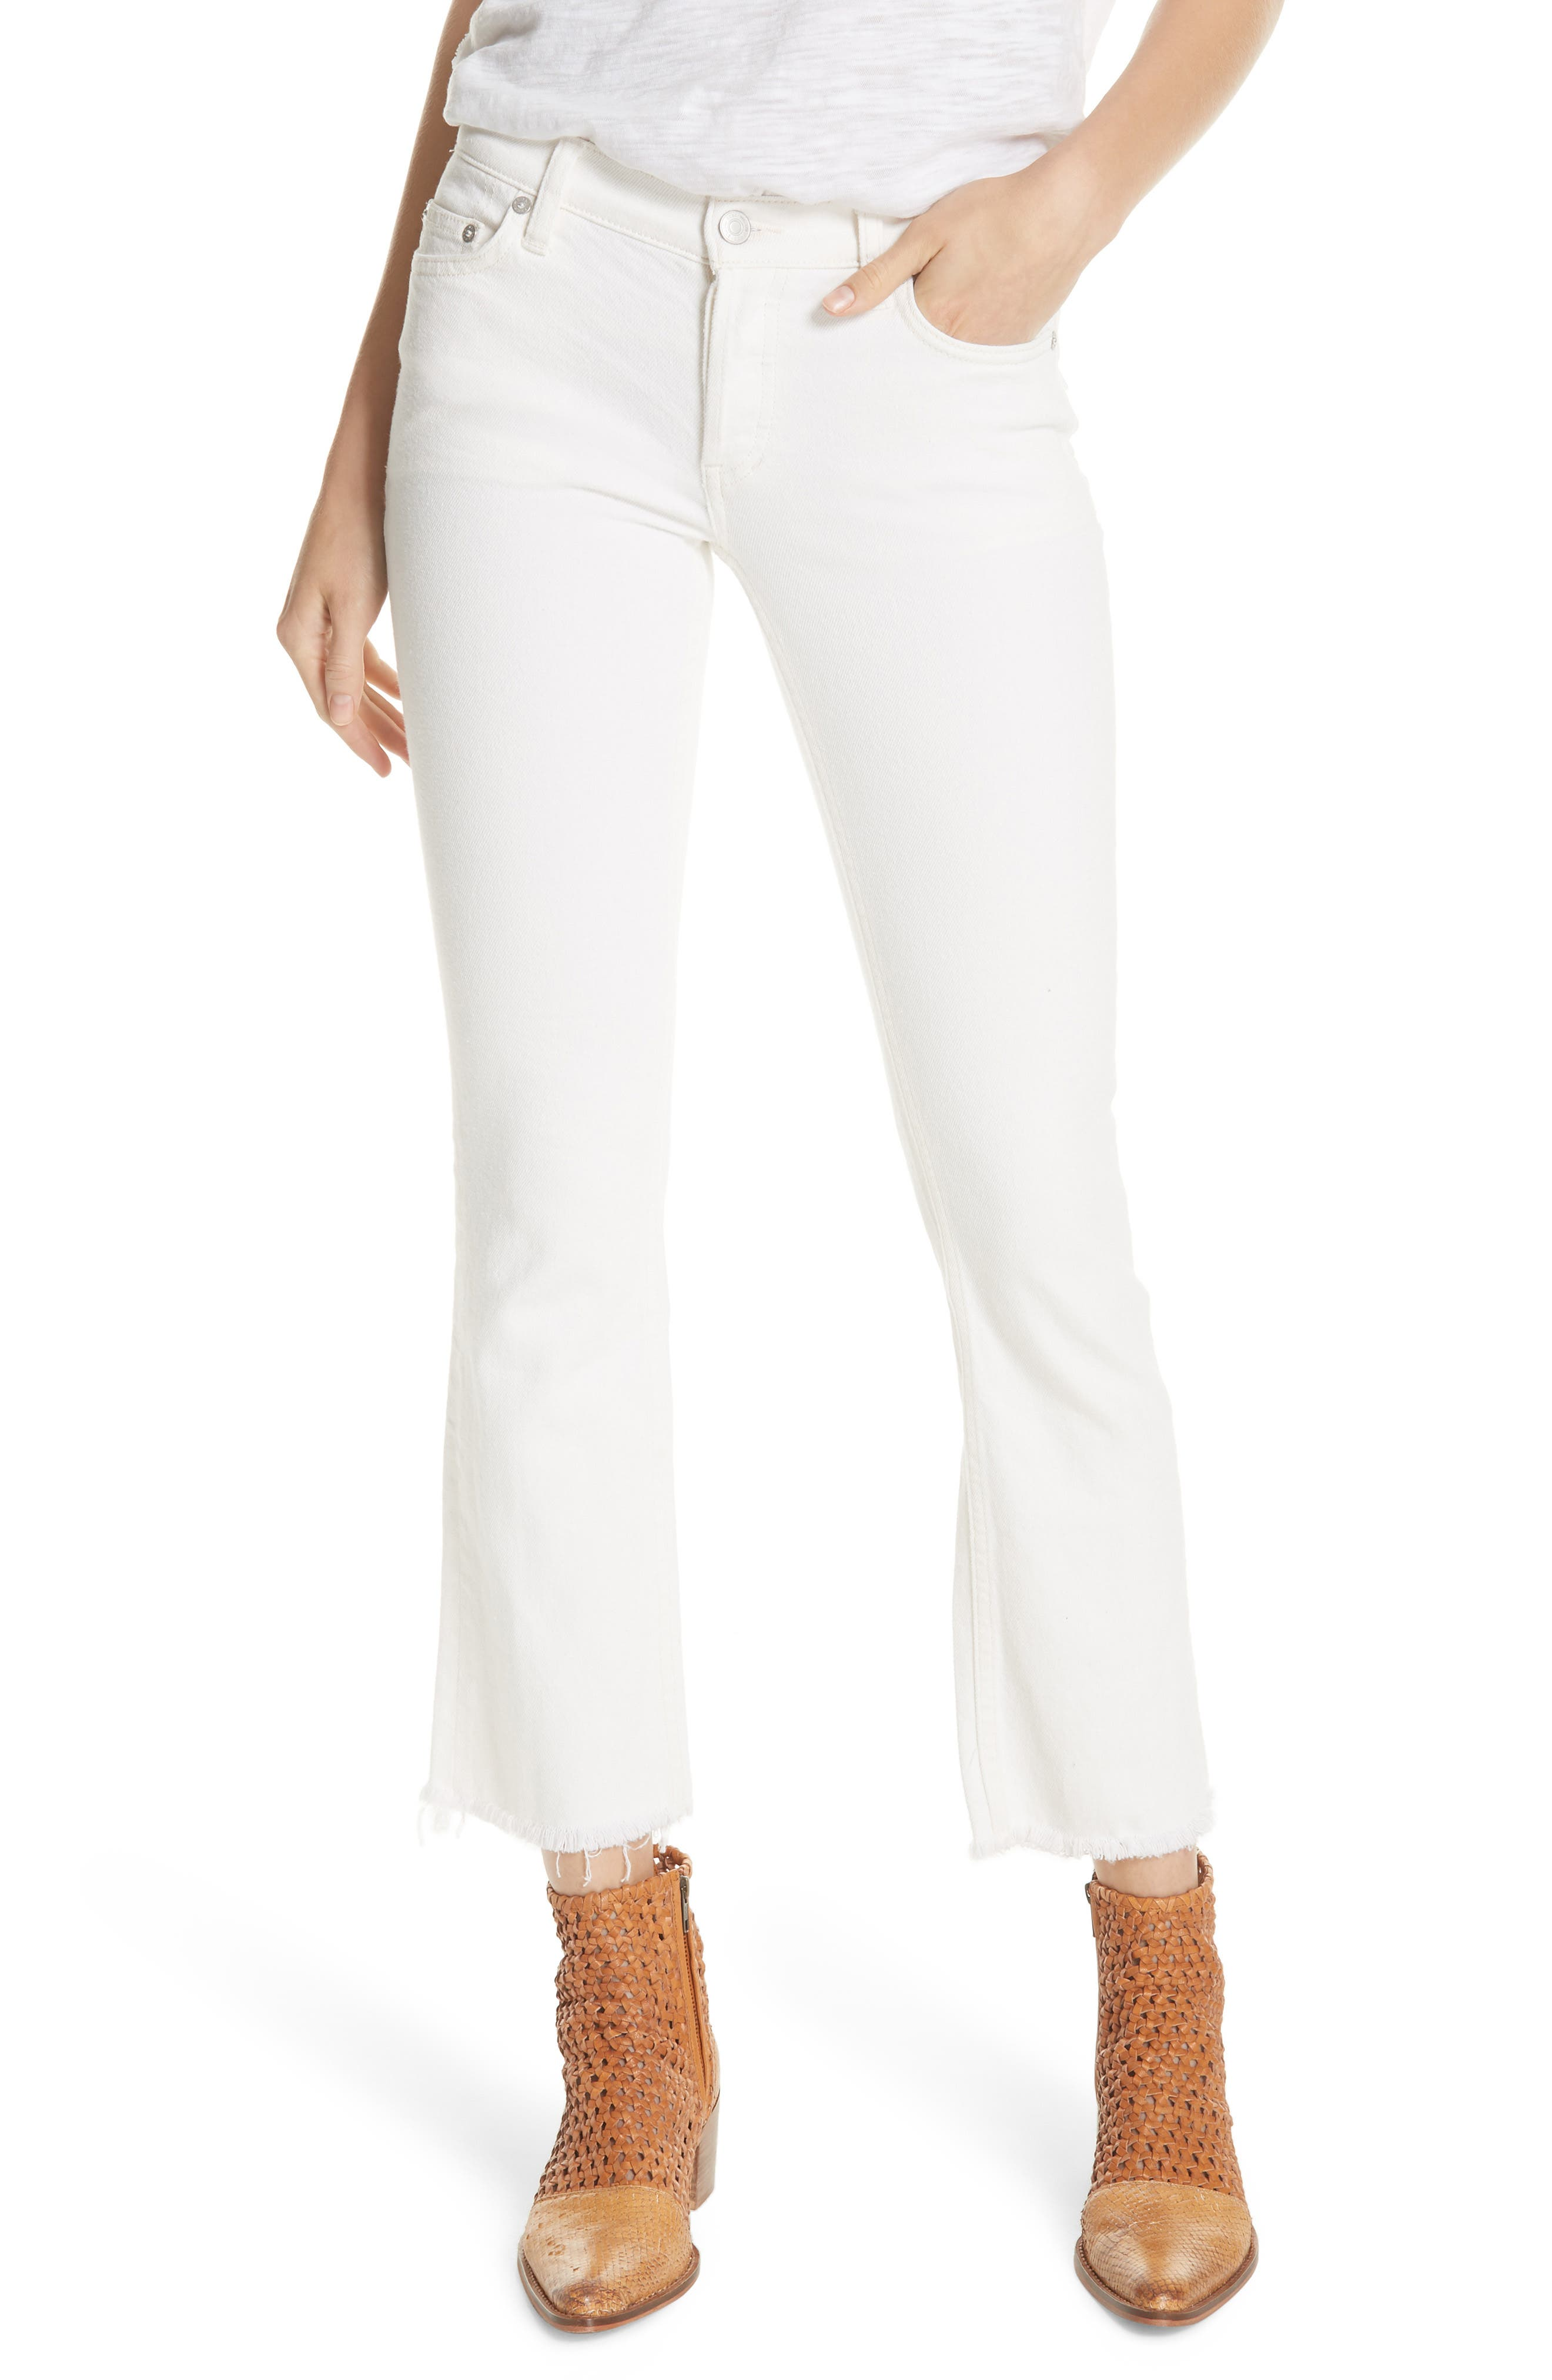 We the Free by Free People Austen Straight Leg Jeans,                         Main,                         color, 100